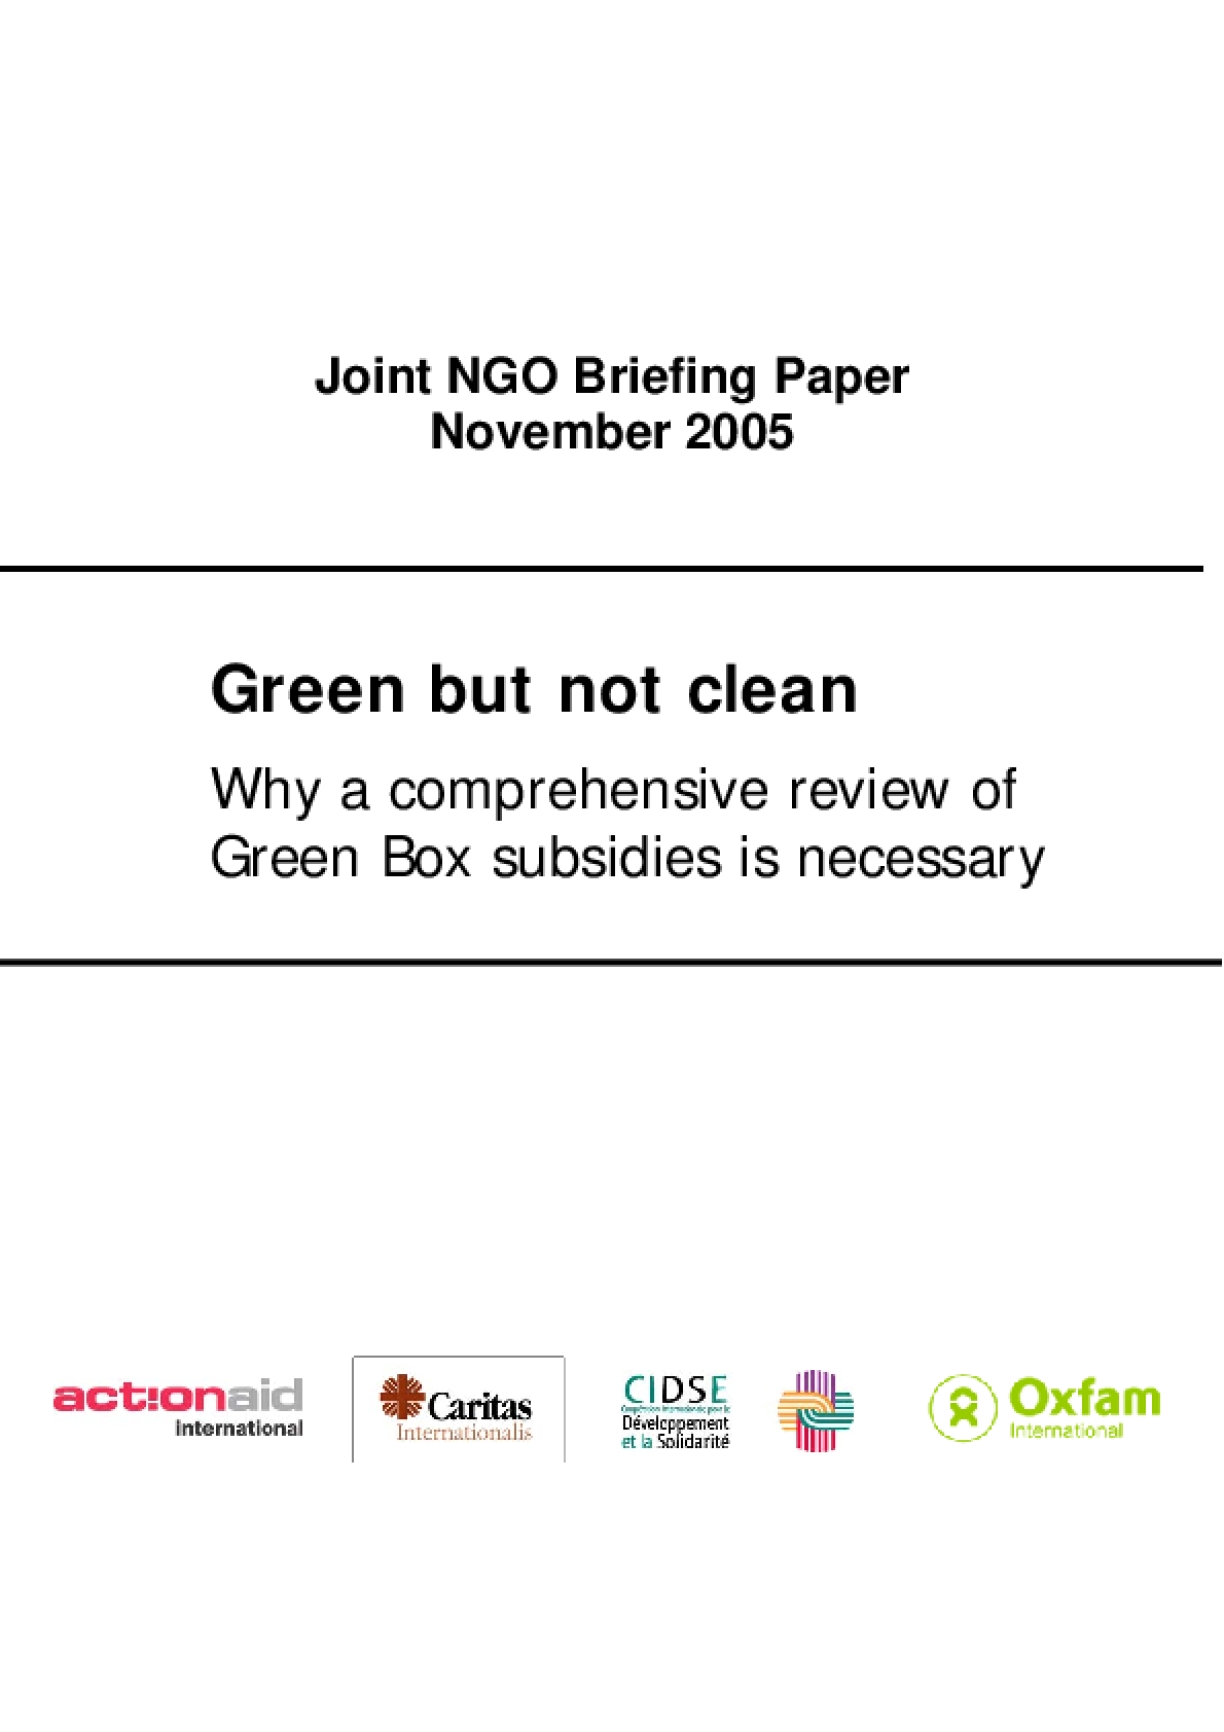 Green but Not Clean: Why a Comprehensive Review of Green Box Subsidies Is Necessary